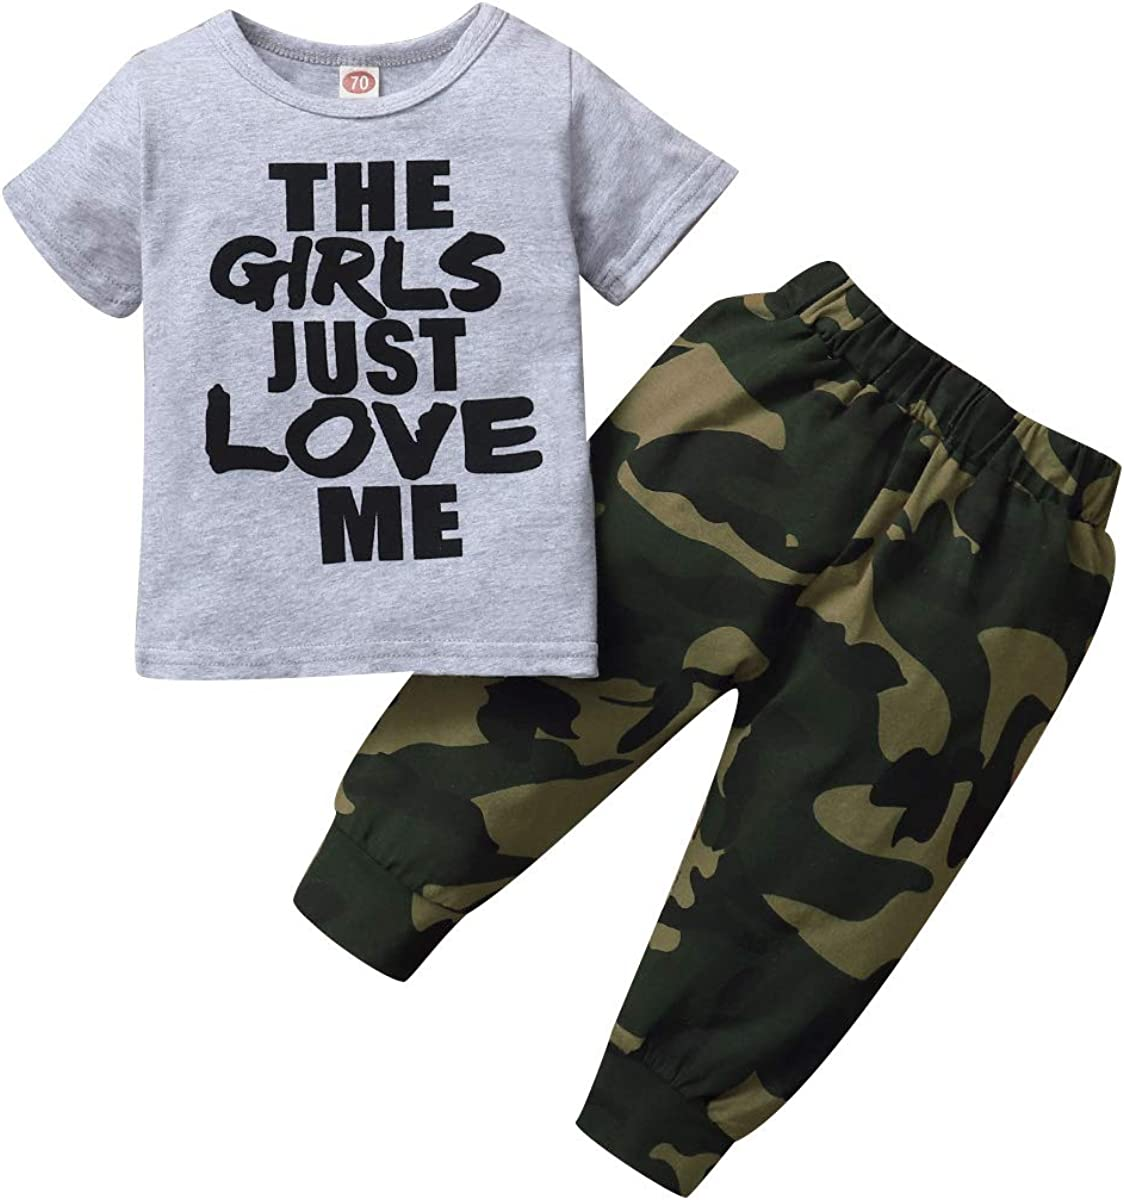 Baby Boys Camouflage Hooded Sweatshirt Outfit The Girl Just Love Me Top Pants Set